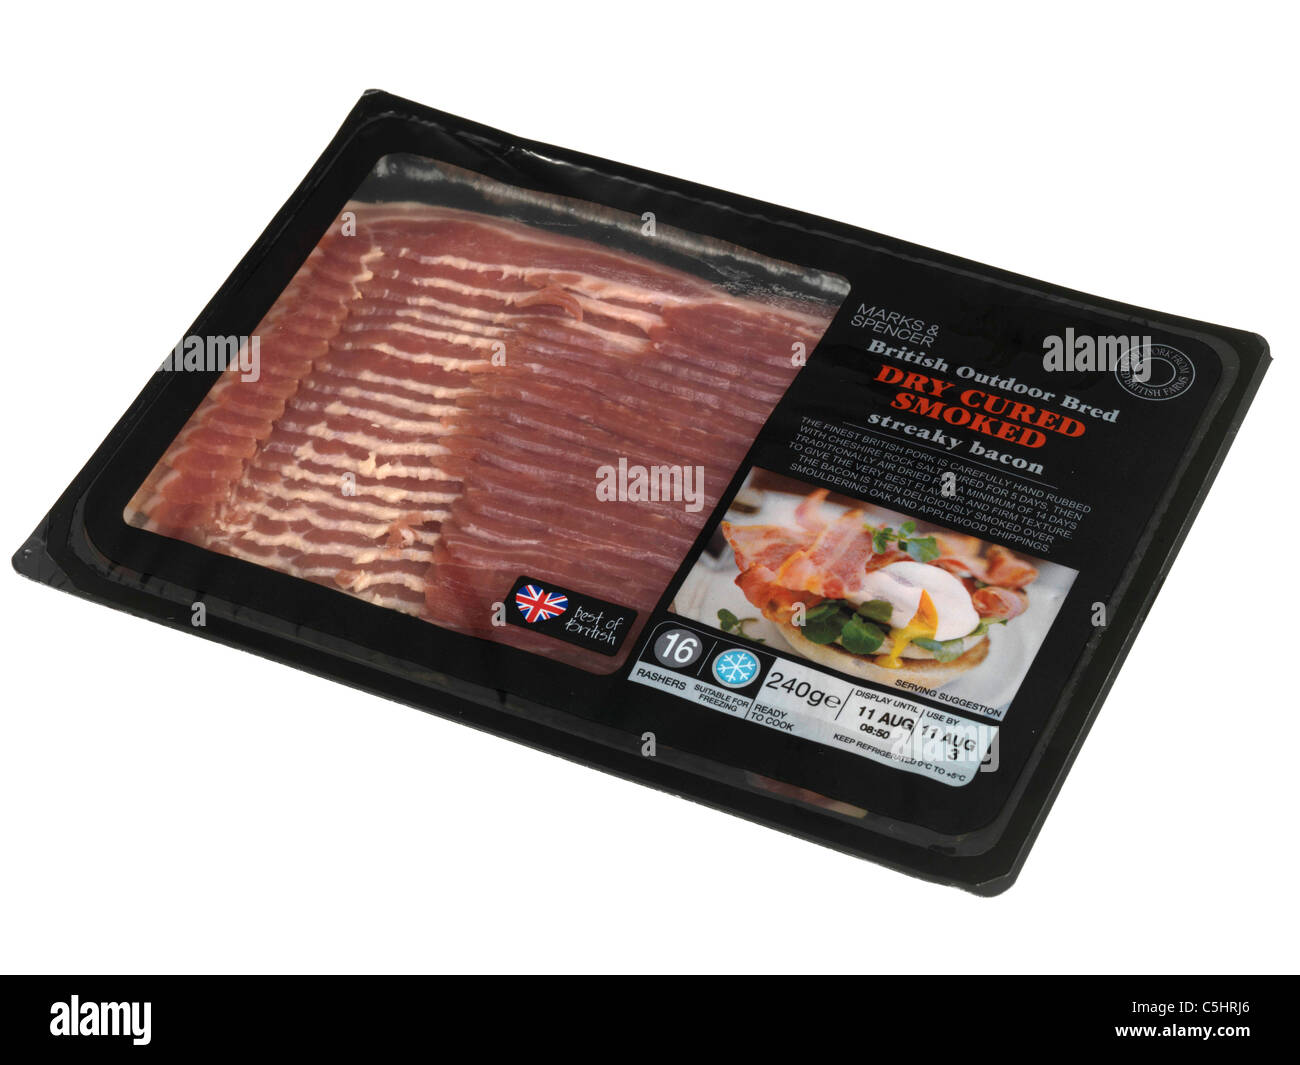 Packet of Dry Cured Streaky Bacon - Stock Image